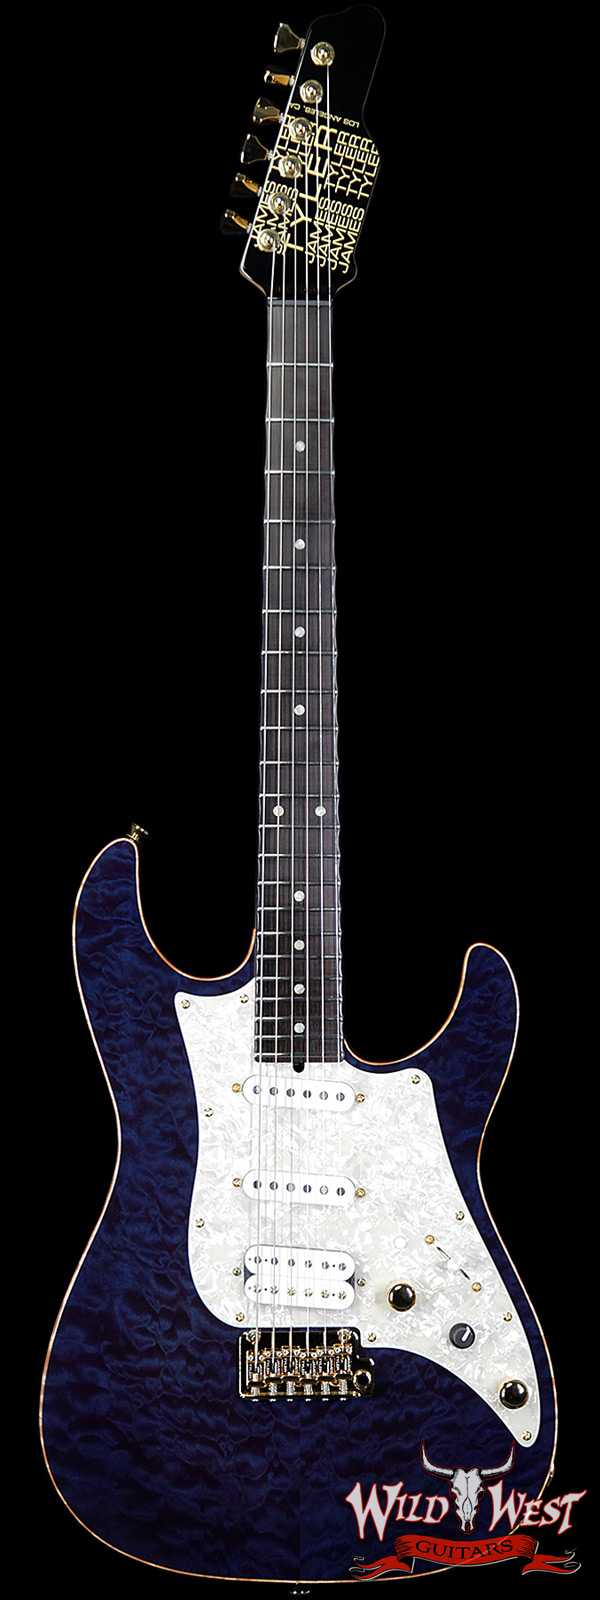 James Tyler USA Studio Elite HD Quilted Maple Top Flame Maple Neck Ebony Fingerboard Royal Blue